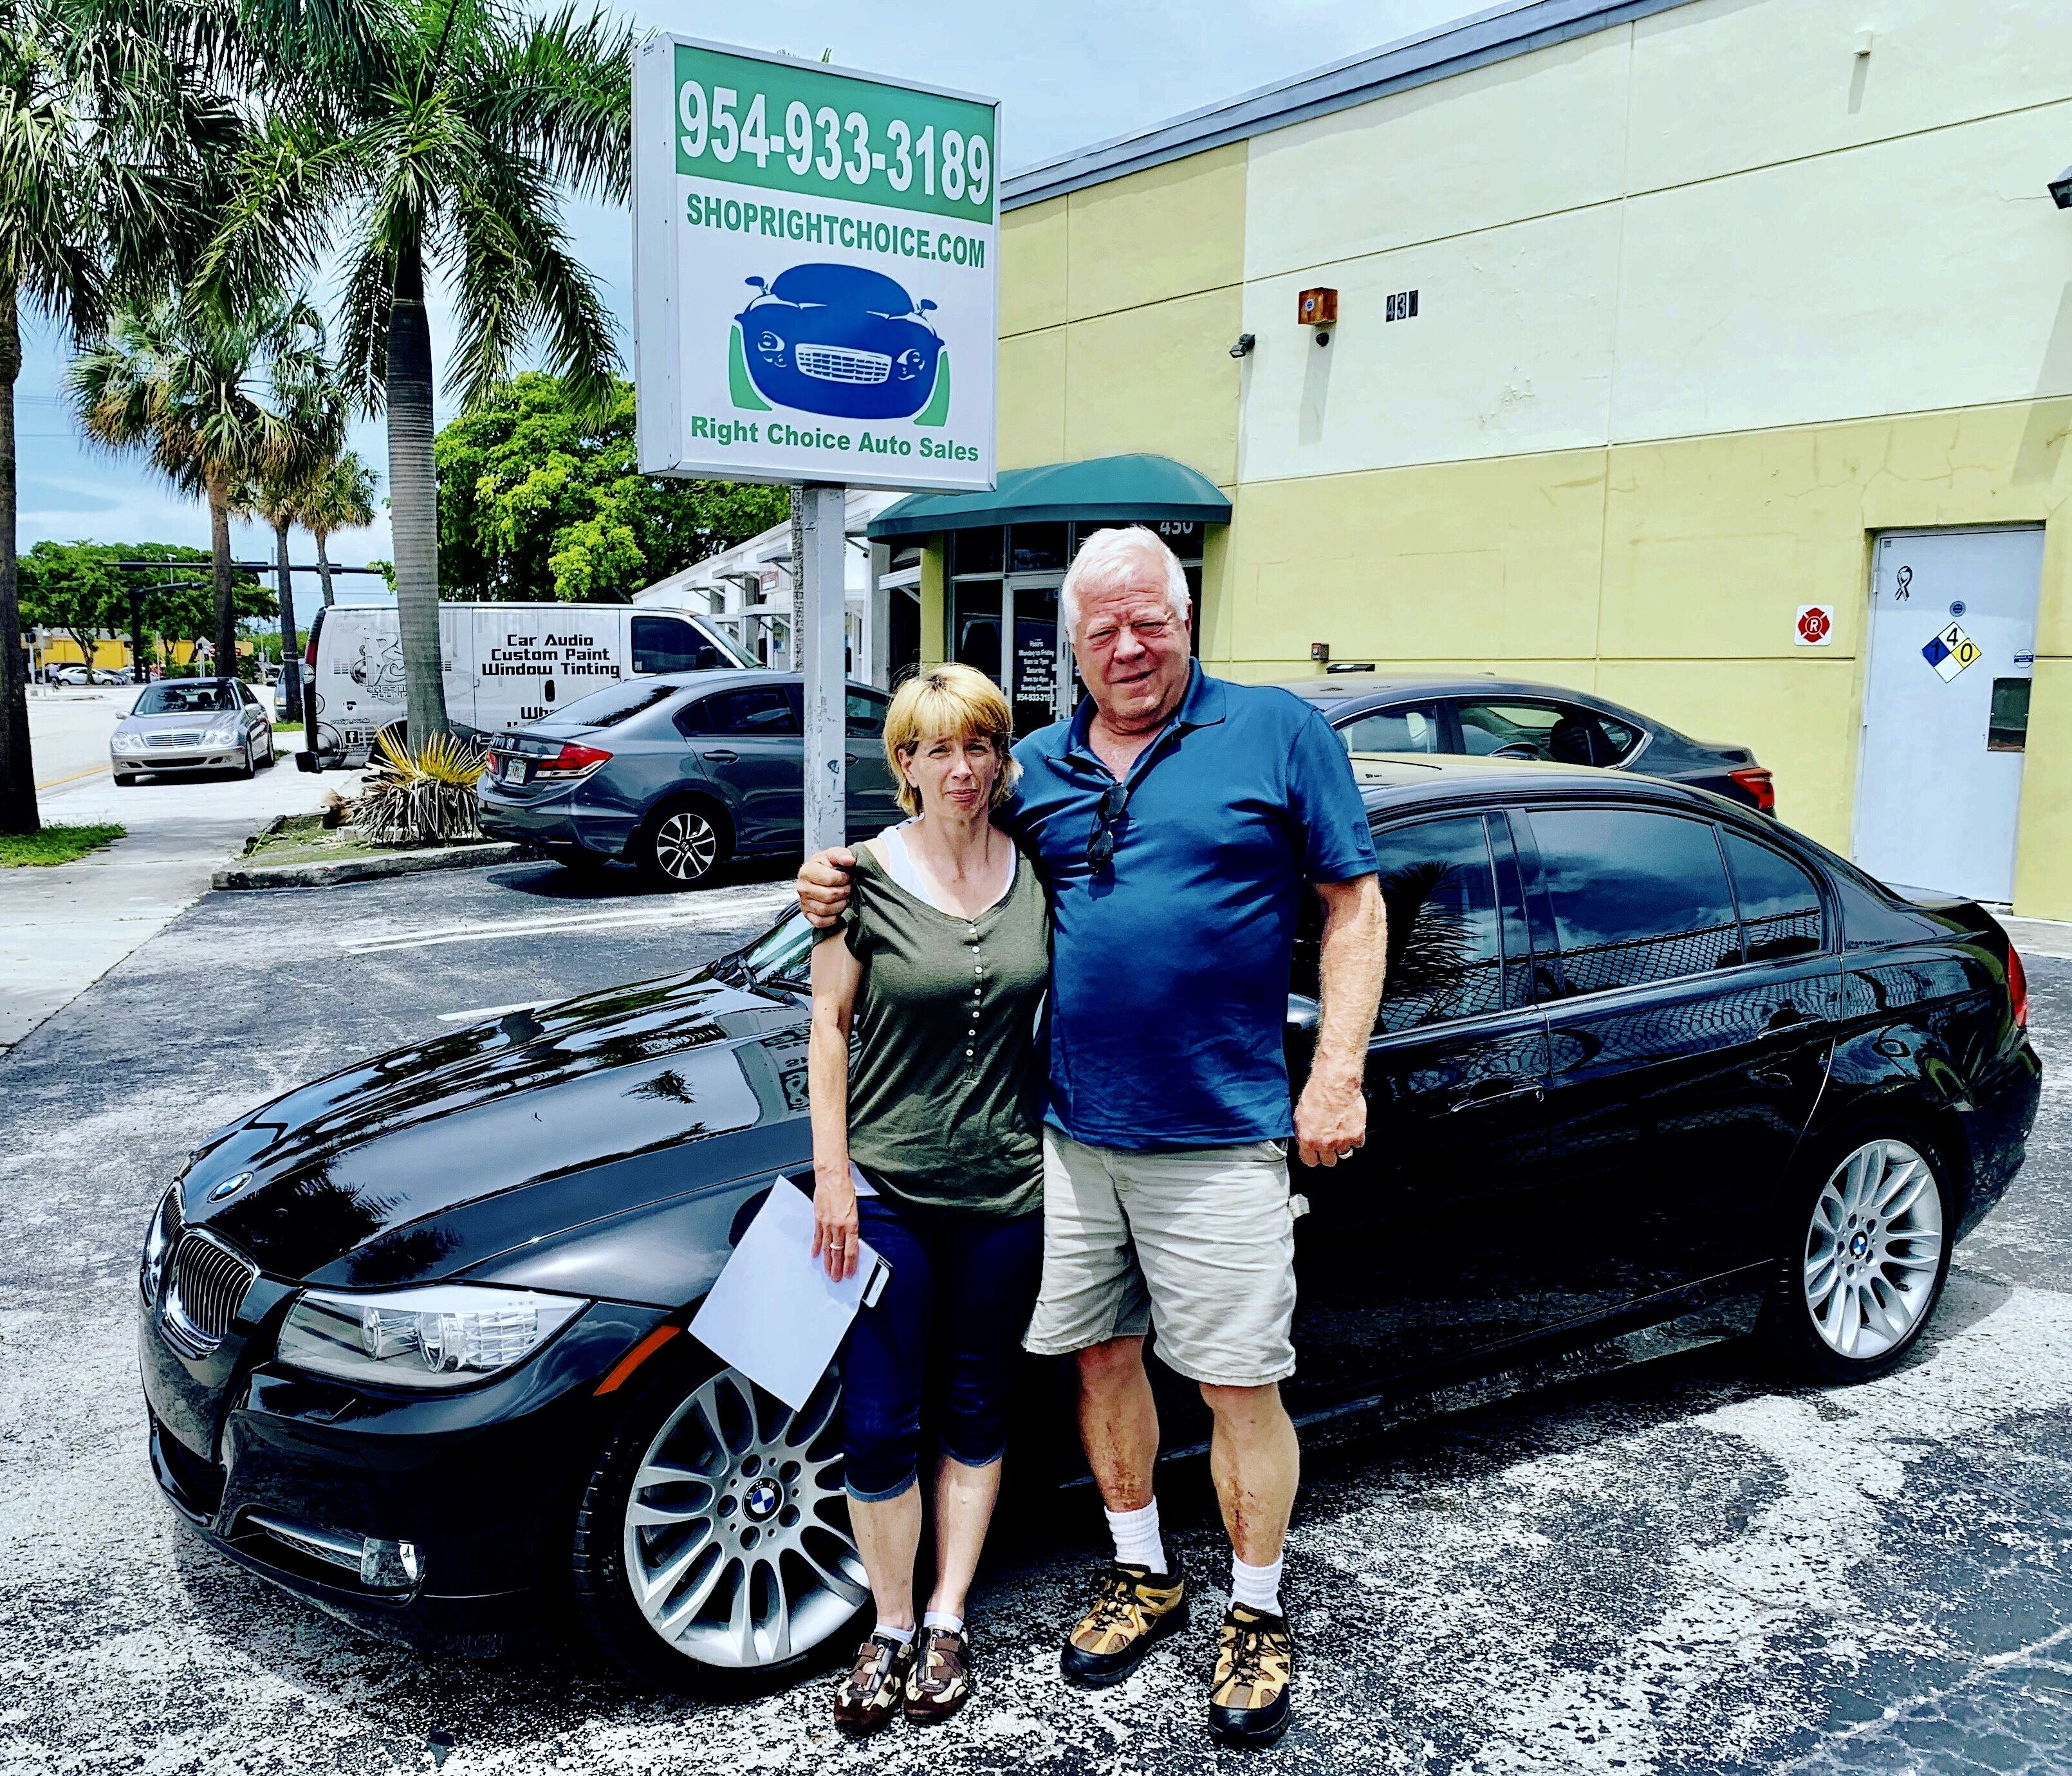 Bob And Kelley Flew In From Pennsylvania To Buy This Awesome 2011 Bmw 335d Shoprightchoice Com For The Be Cars For Sale Used Luxury Cars Mercedes Benz Diesel